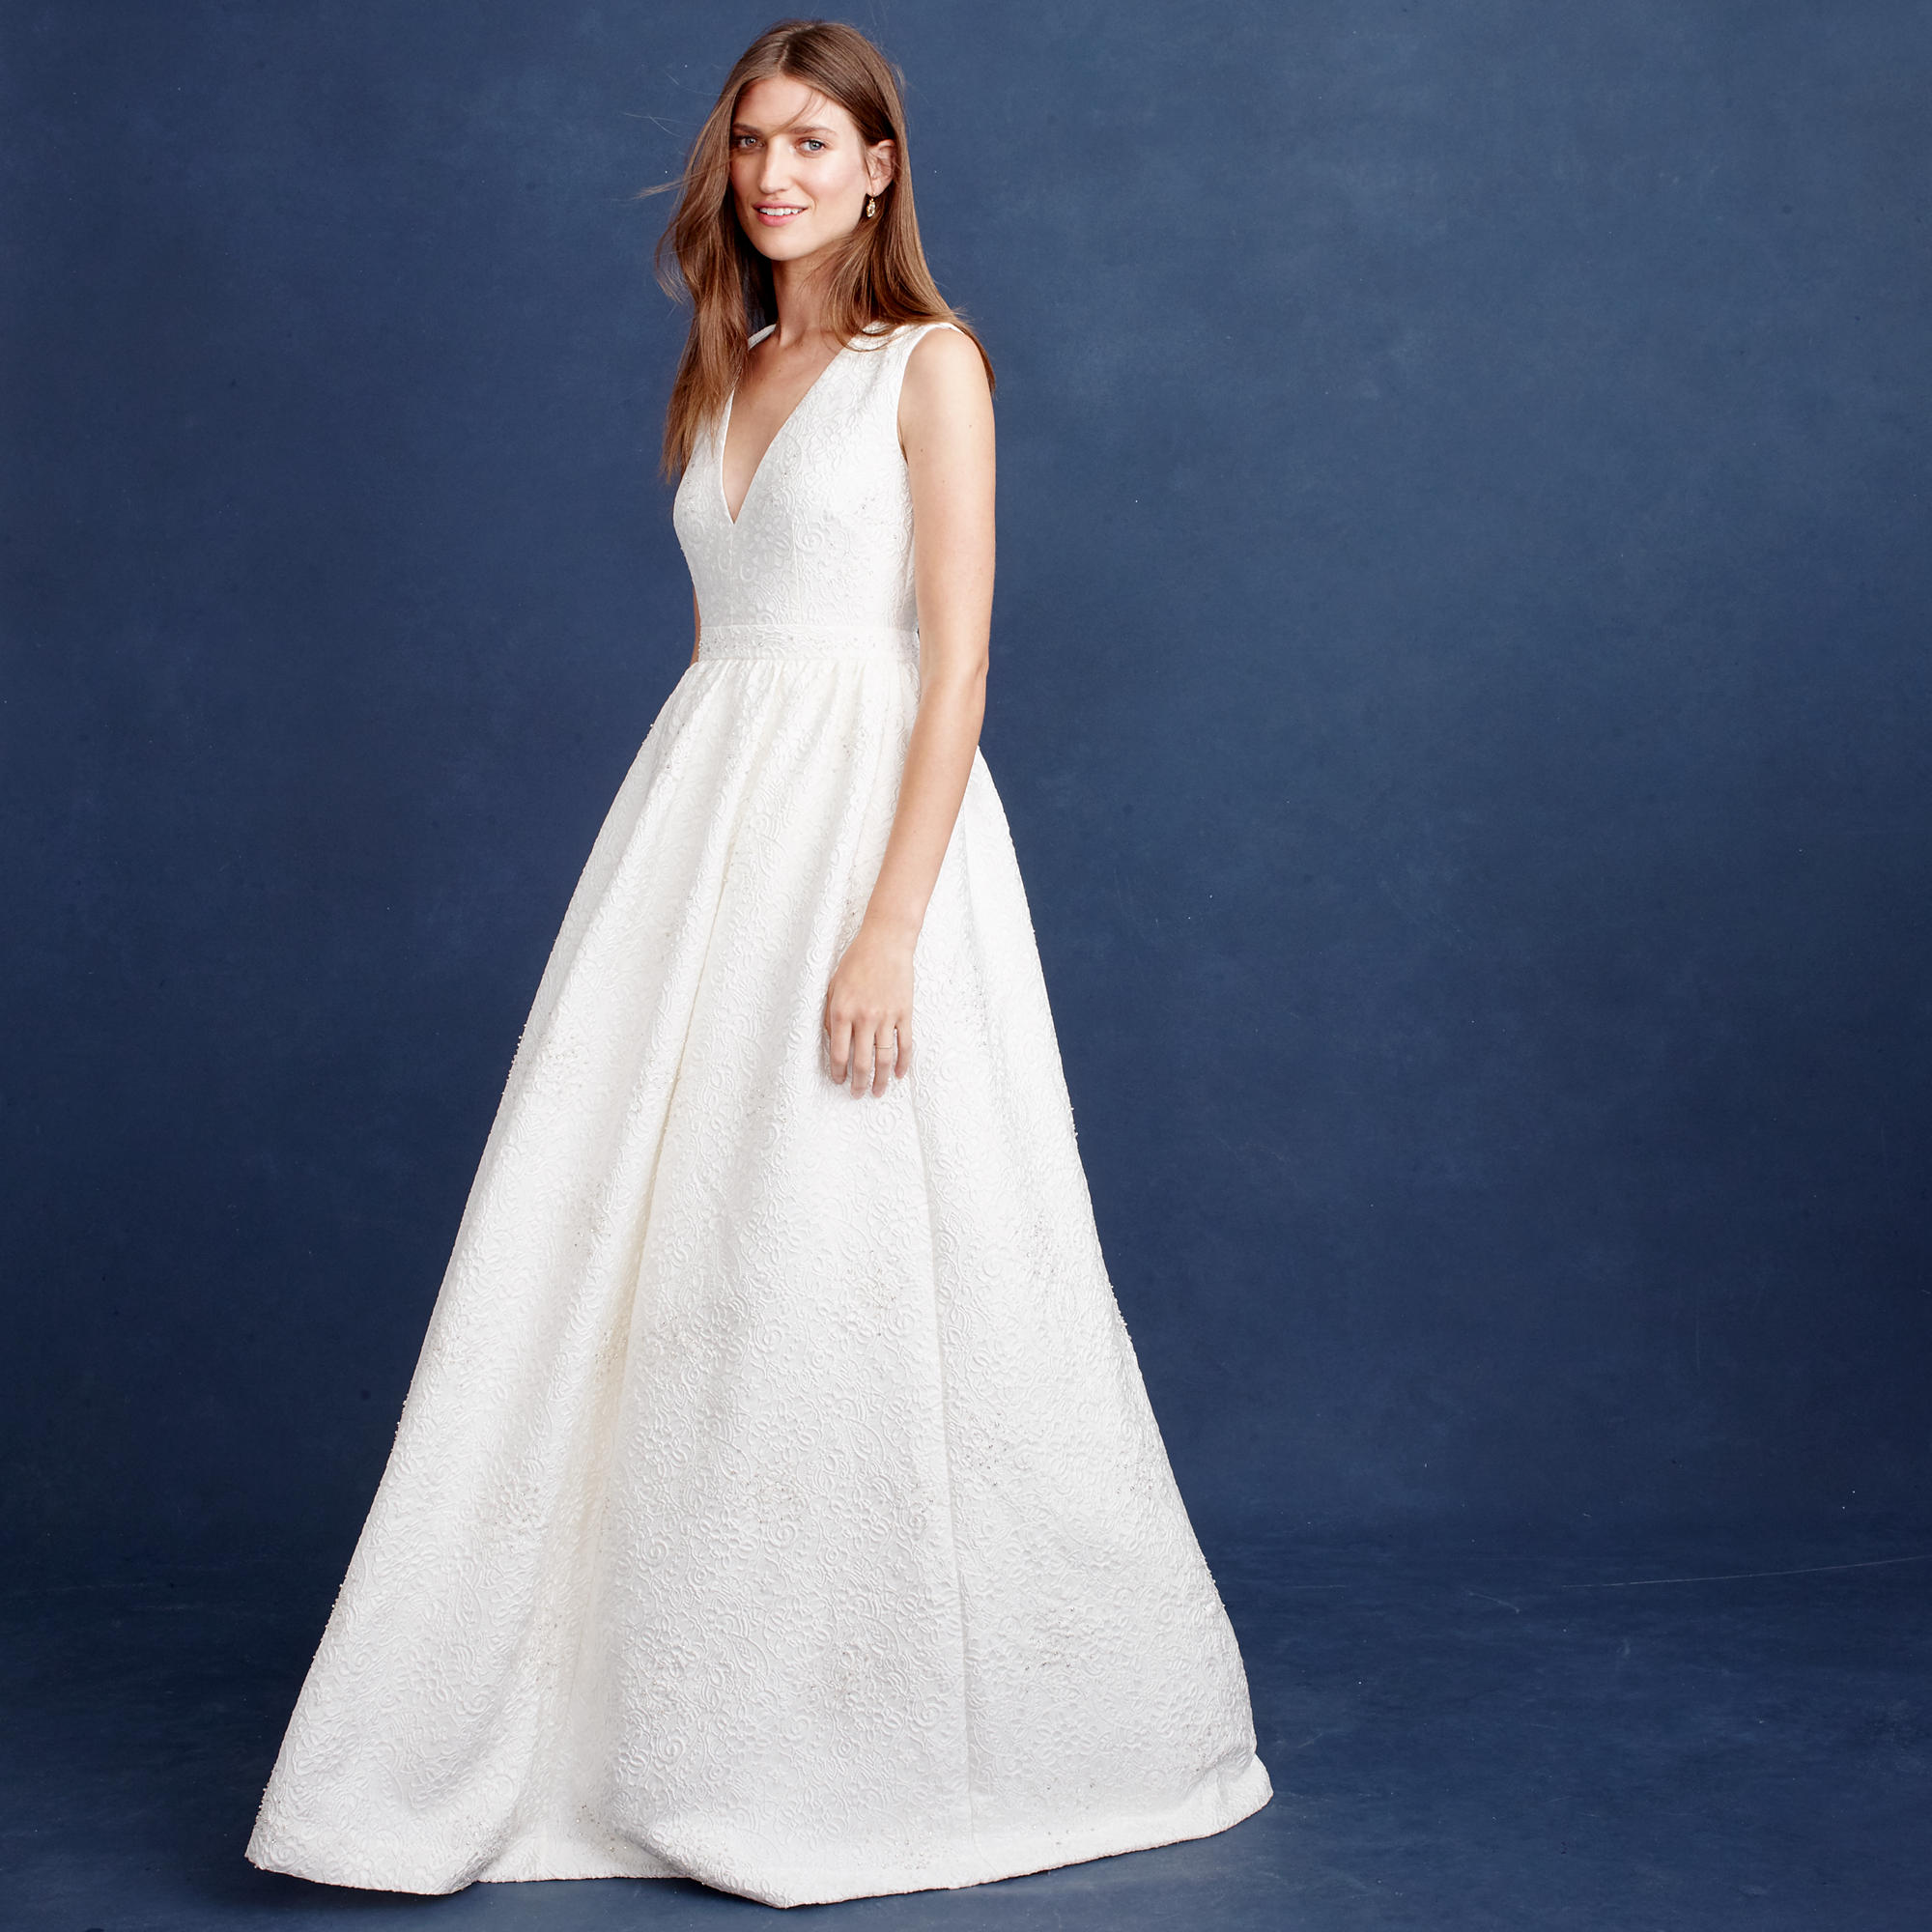 Emilia gown wedding dresses j crew for J crew wedding dresses